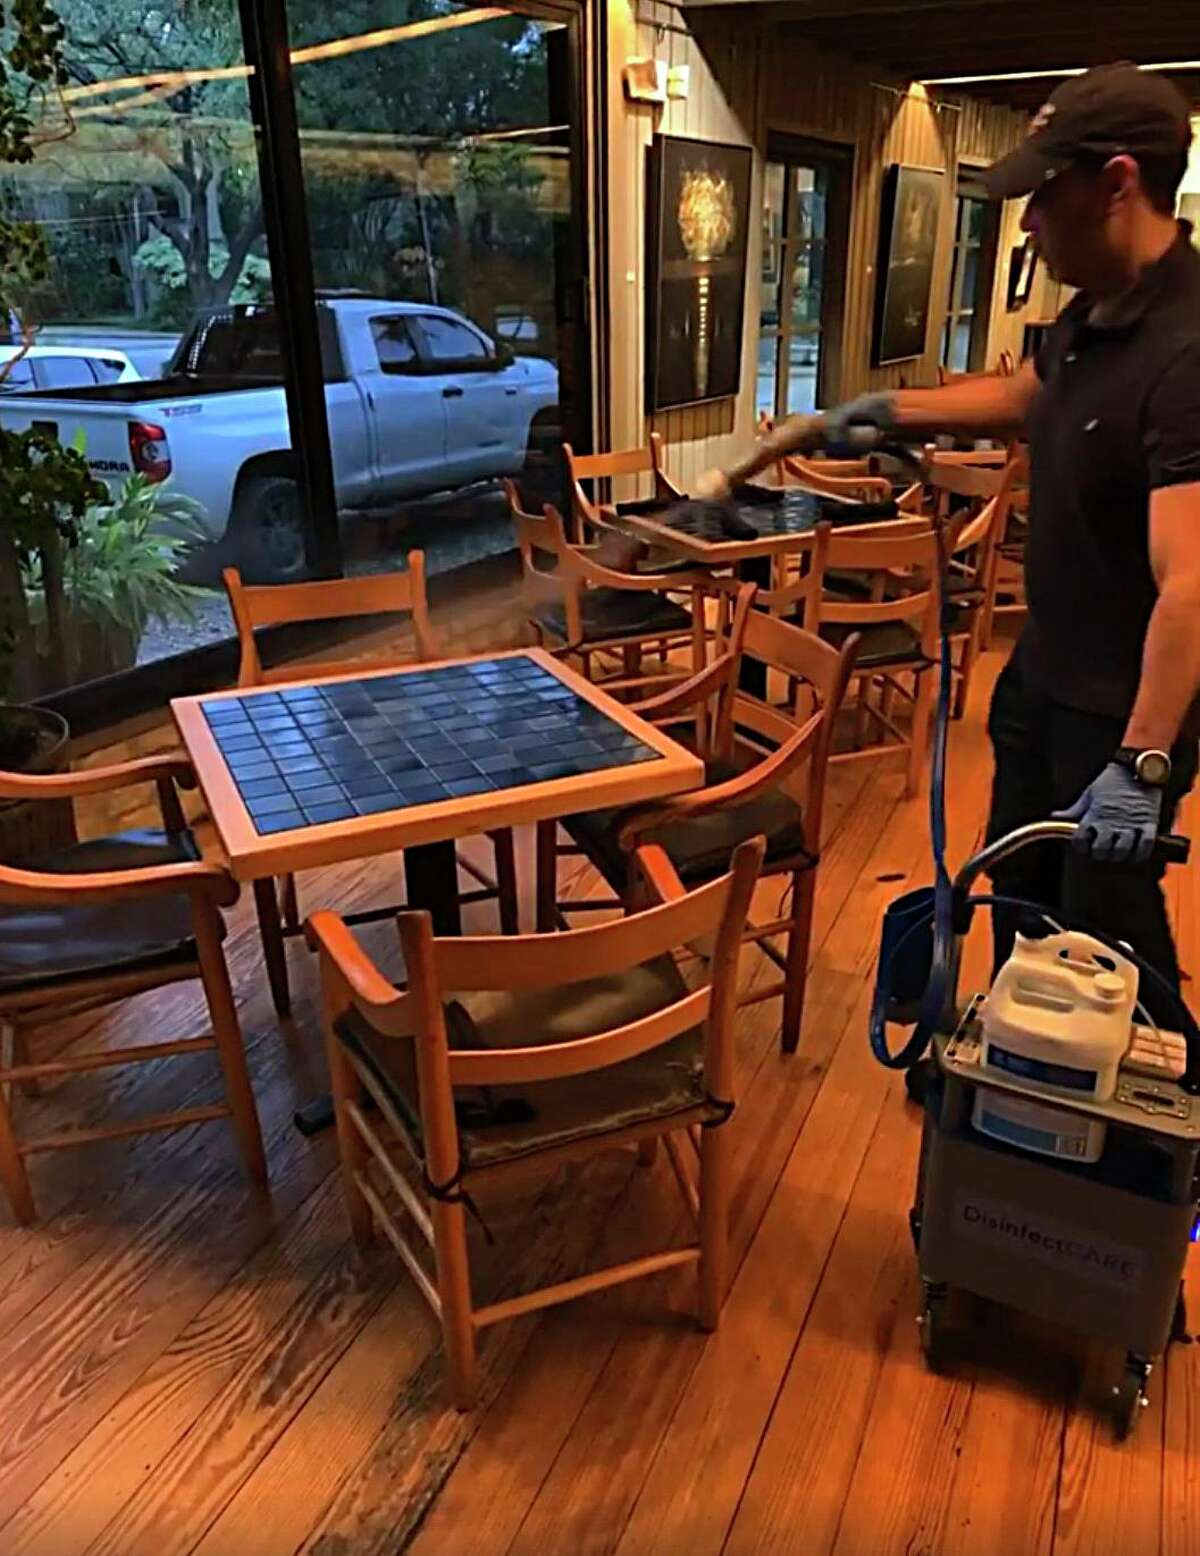 A worker with the San Antonio-based company DisinfectCare disinfects a dining room at Cappy's as the Alamo Heights restaurant takes steps to protect customers and staff during the novel coronavirus crisis.